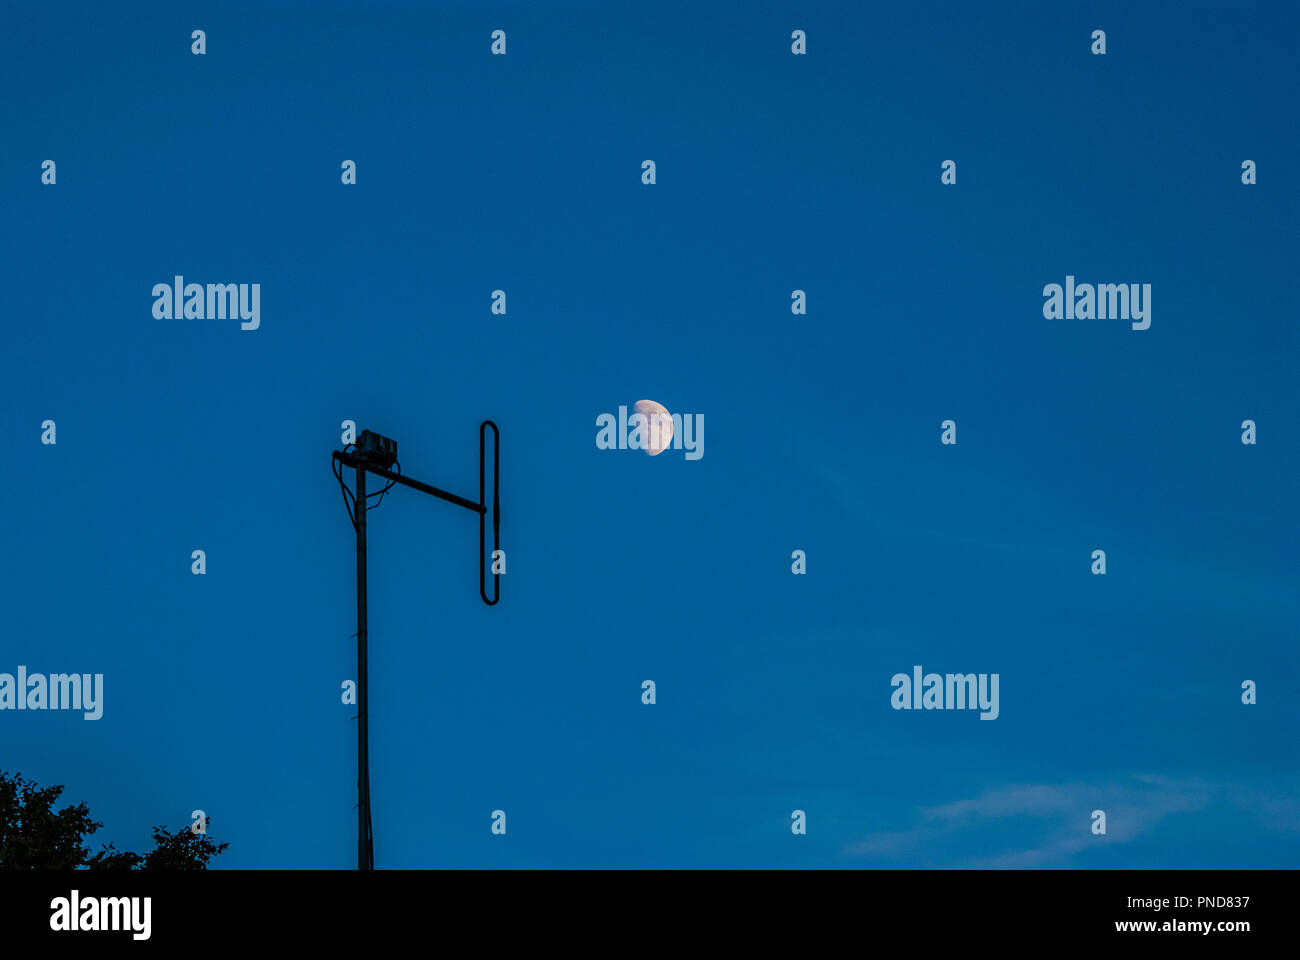 The old television antenna is aimed at the moon - Stock Image